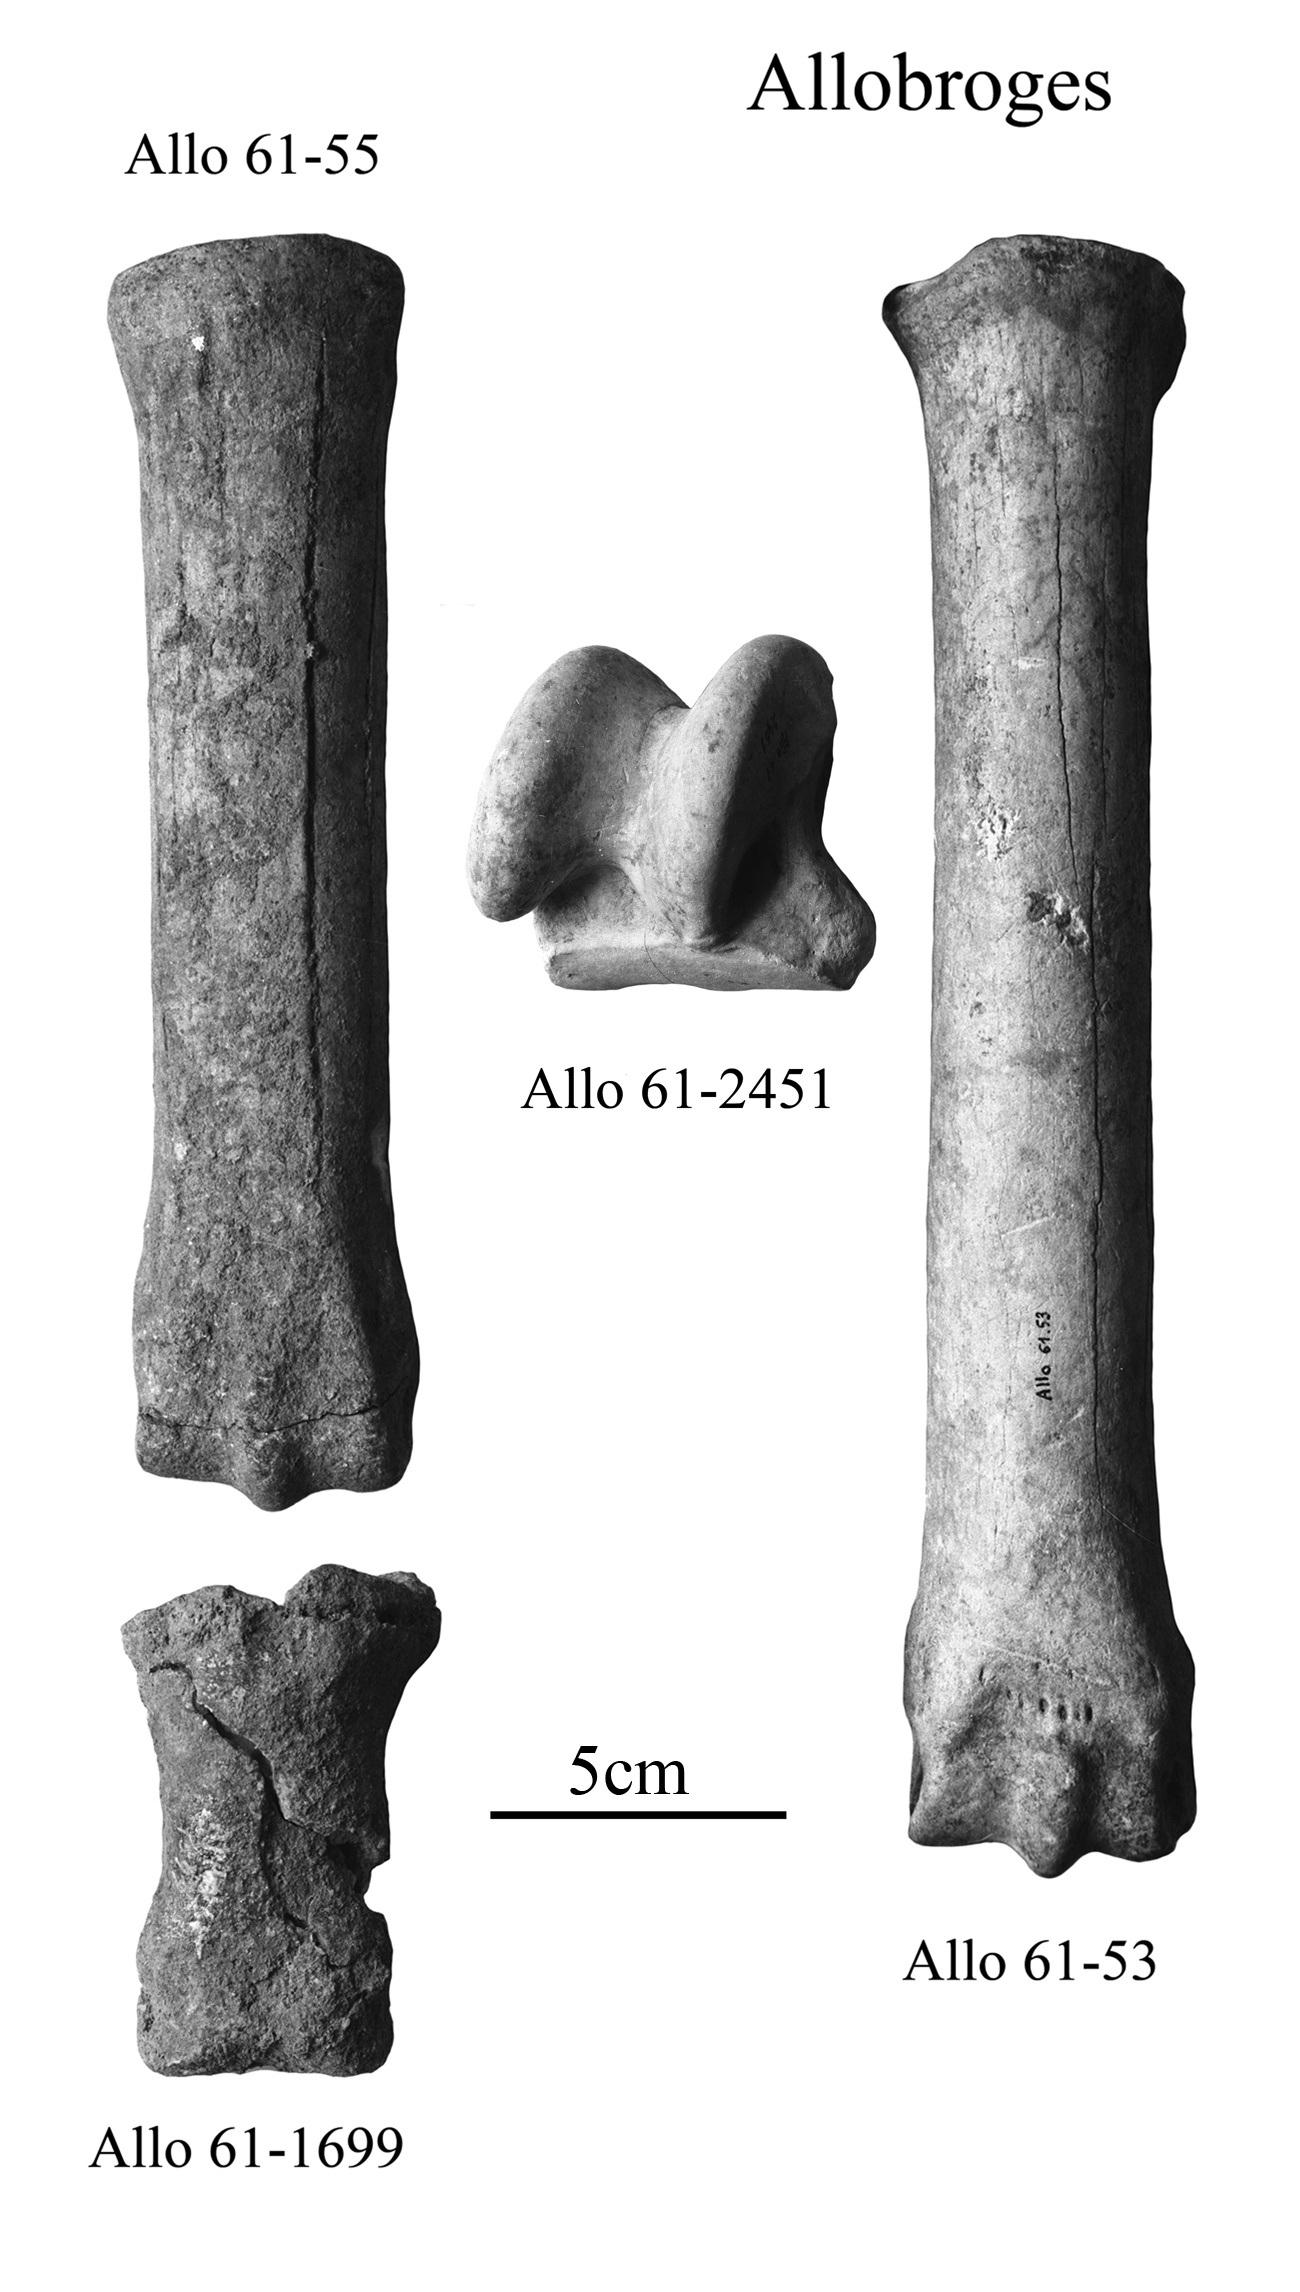 Fig.2 Allobroges, E. algericus, Limb bones